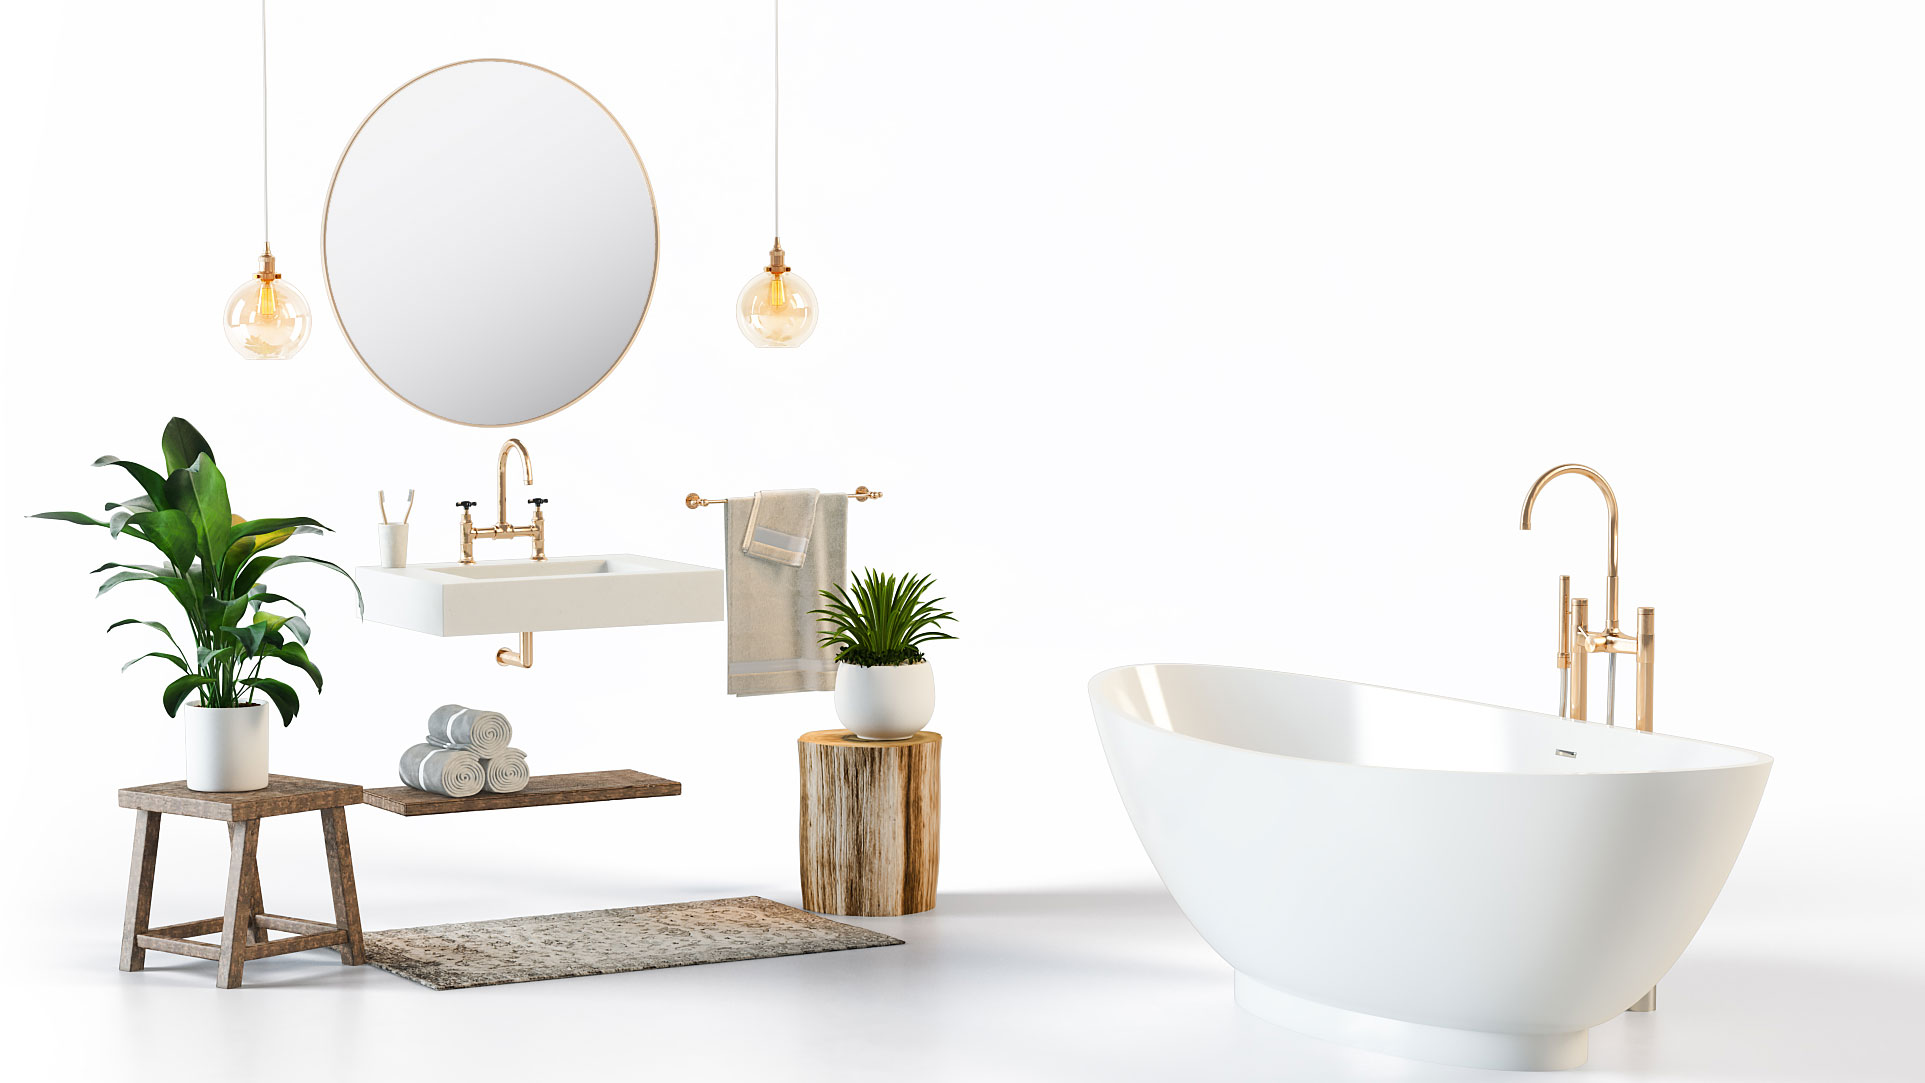 A Bathroom Furniture Collection on a White Background